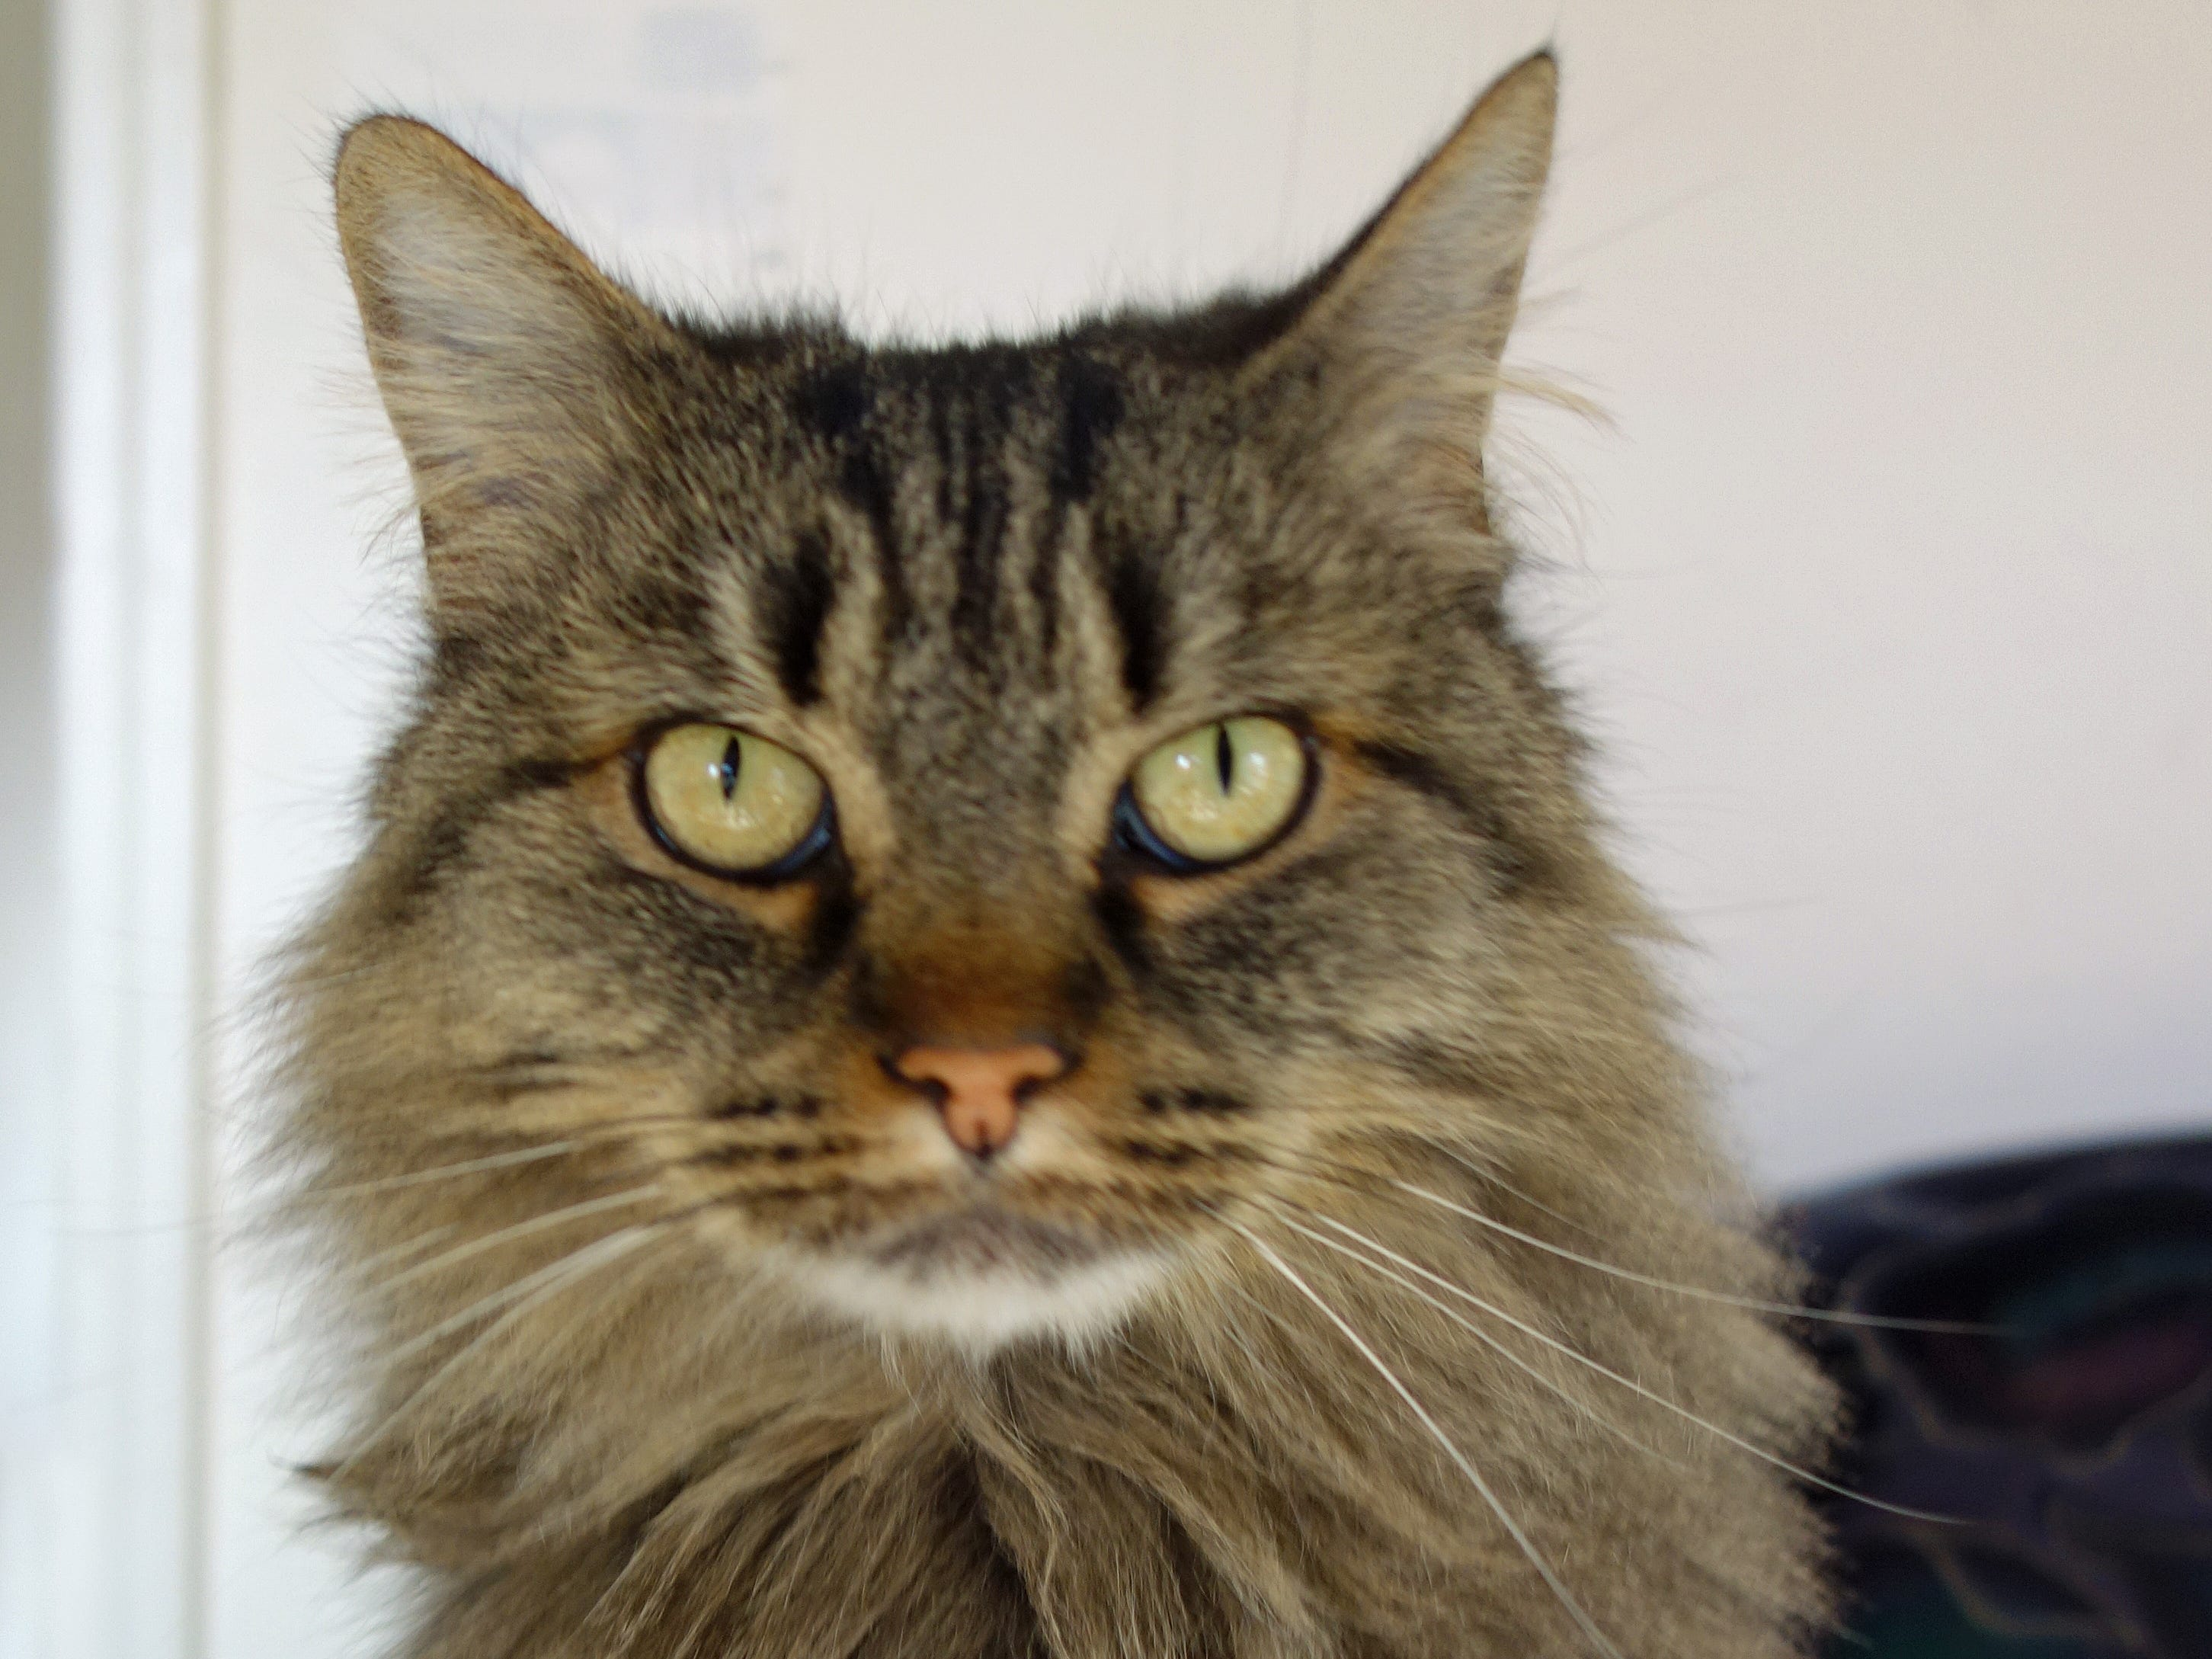 "Mu - pronounced ""mew"" - is a long-haired, female, Maine Coon and tabby mix cat. She's a gentle 6-year-old who likes to be petted and is a lap cat. Email Spay Neuter and Protect at Snap.spayneuterandprotect@gmail.com. Call 209-6966."